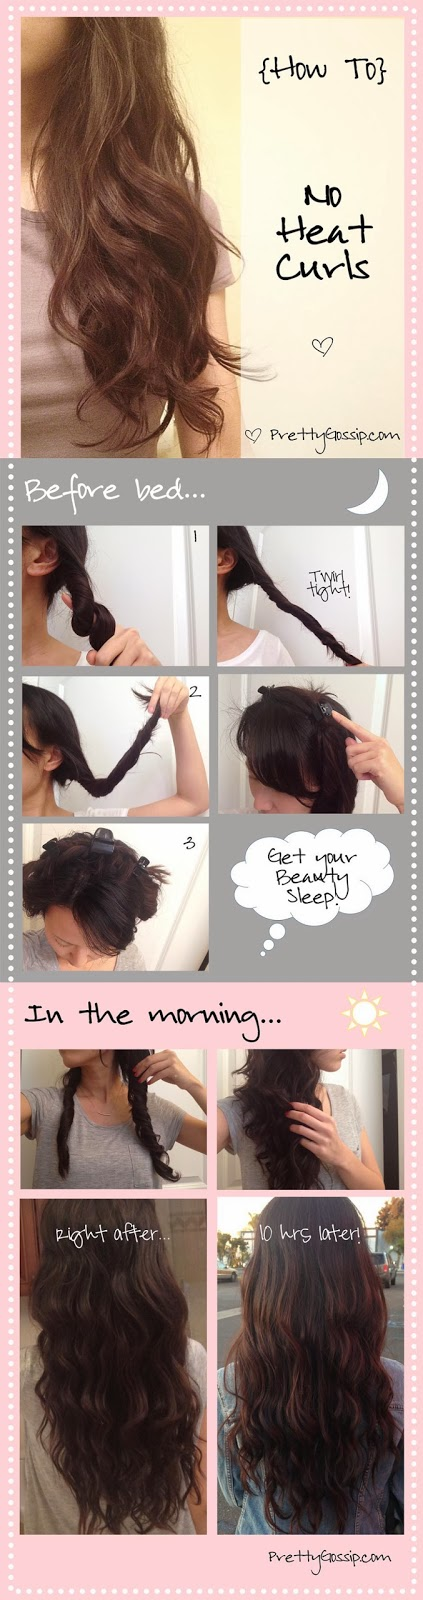 Twist and Twirl No Heat Curls